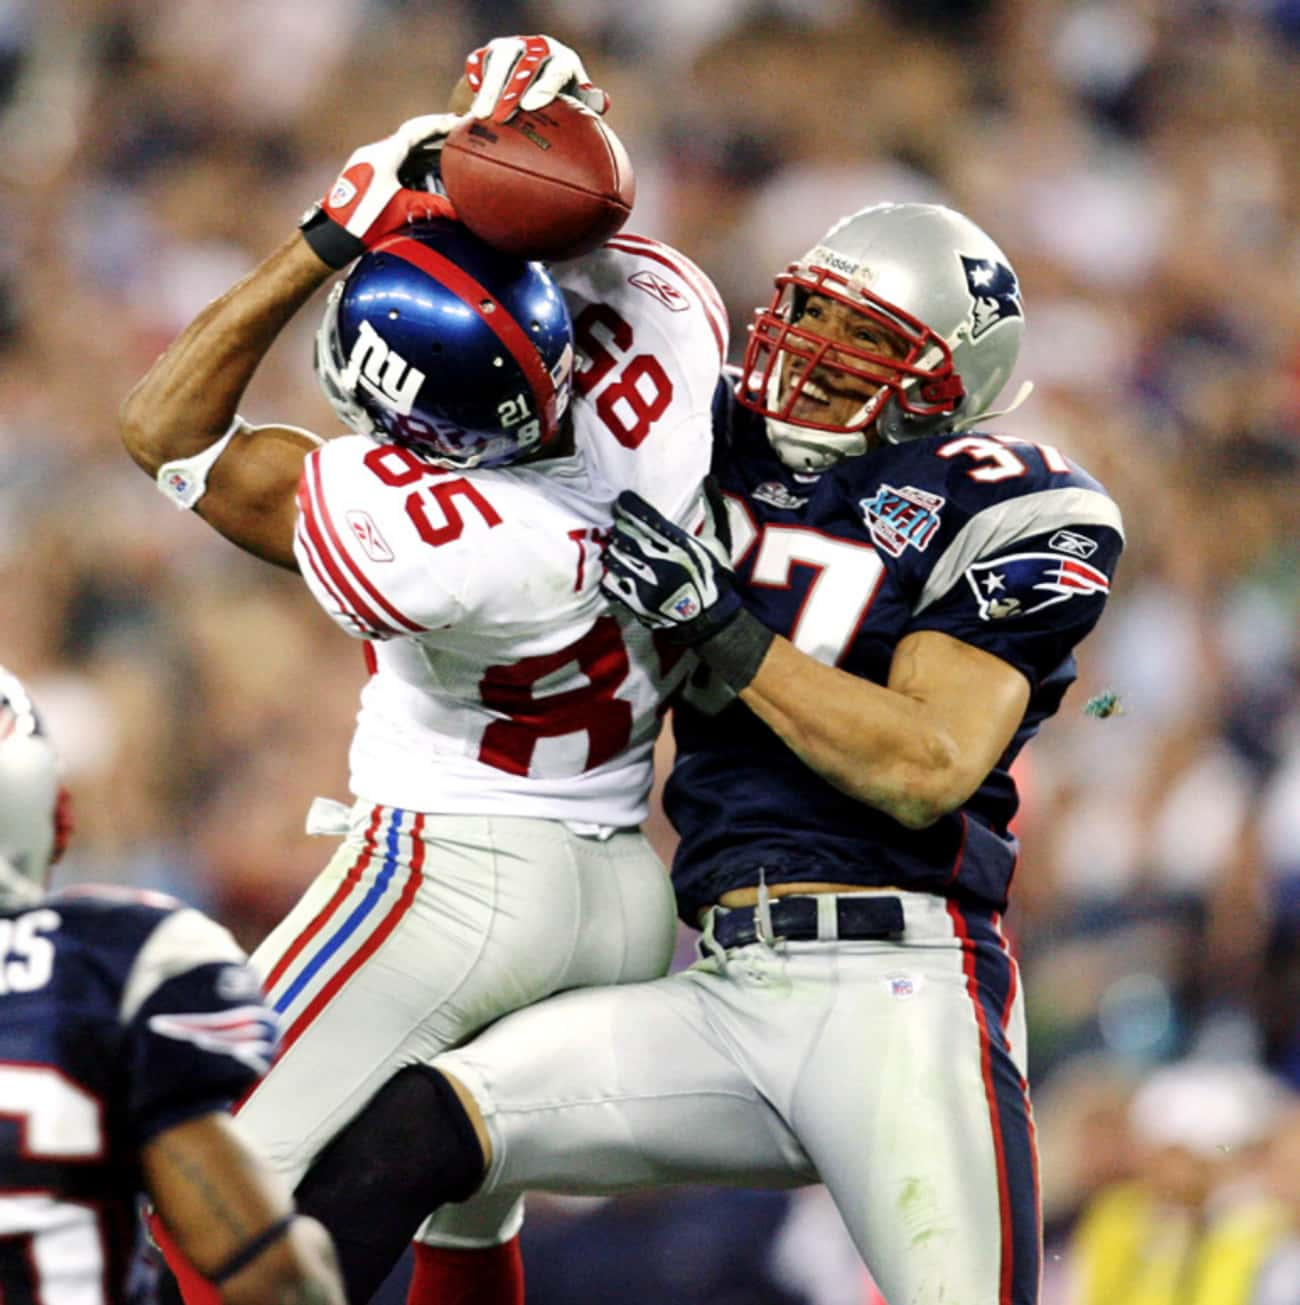 David Tyree's Helmet Catch is listed (or ranked) 1 on the list The Greatest Moments in Super Bowl History